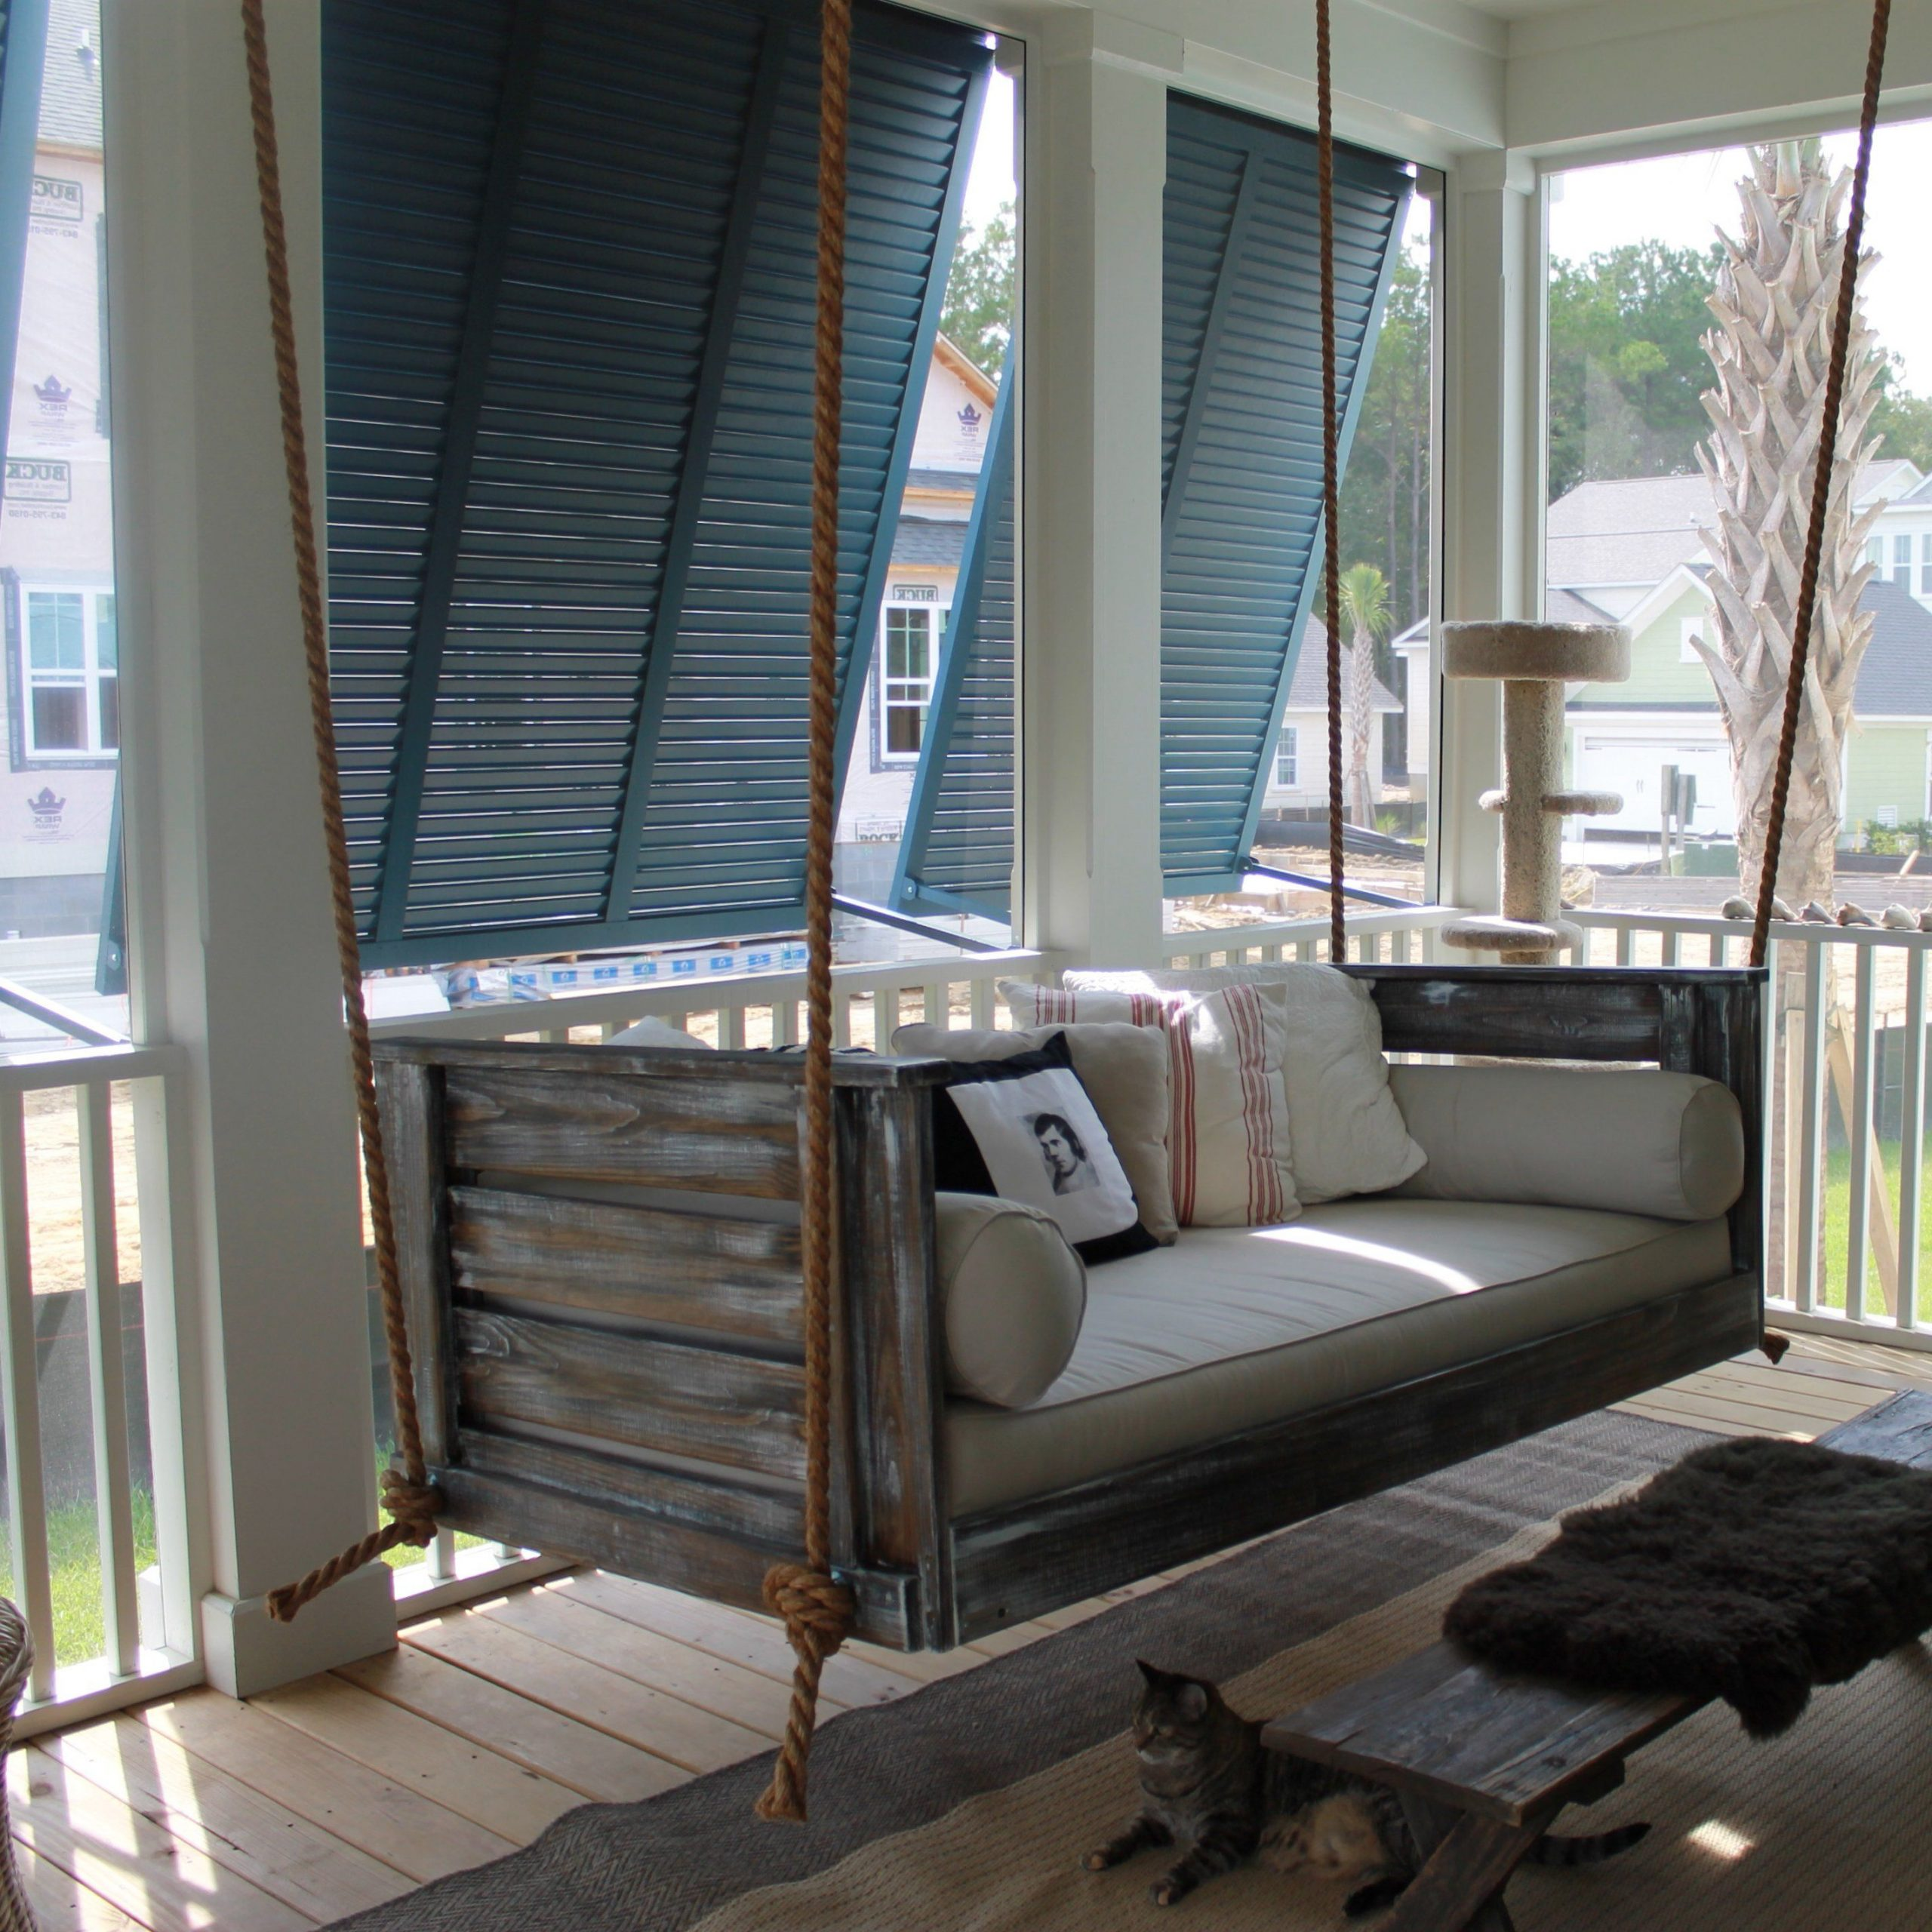 Farmhouse Porch Swings, Vintage Throughout Hanging Daybed Rope Porch Swings (Gallery 6 of 30)